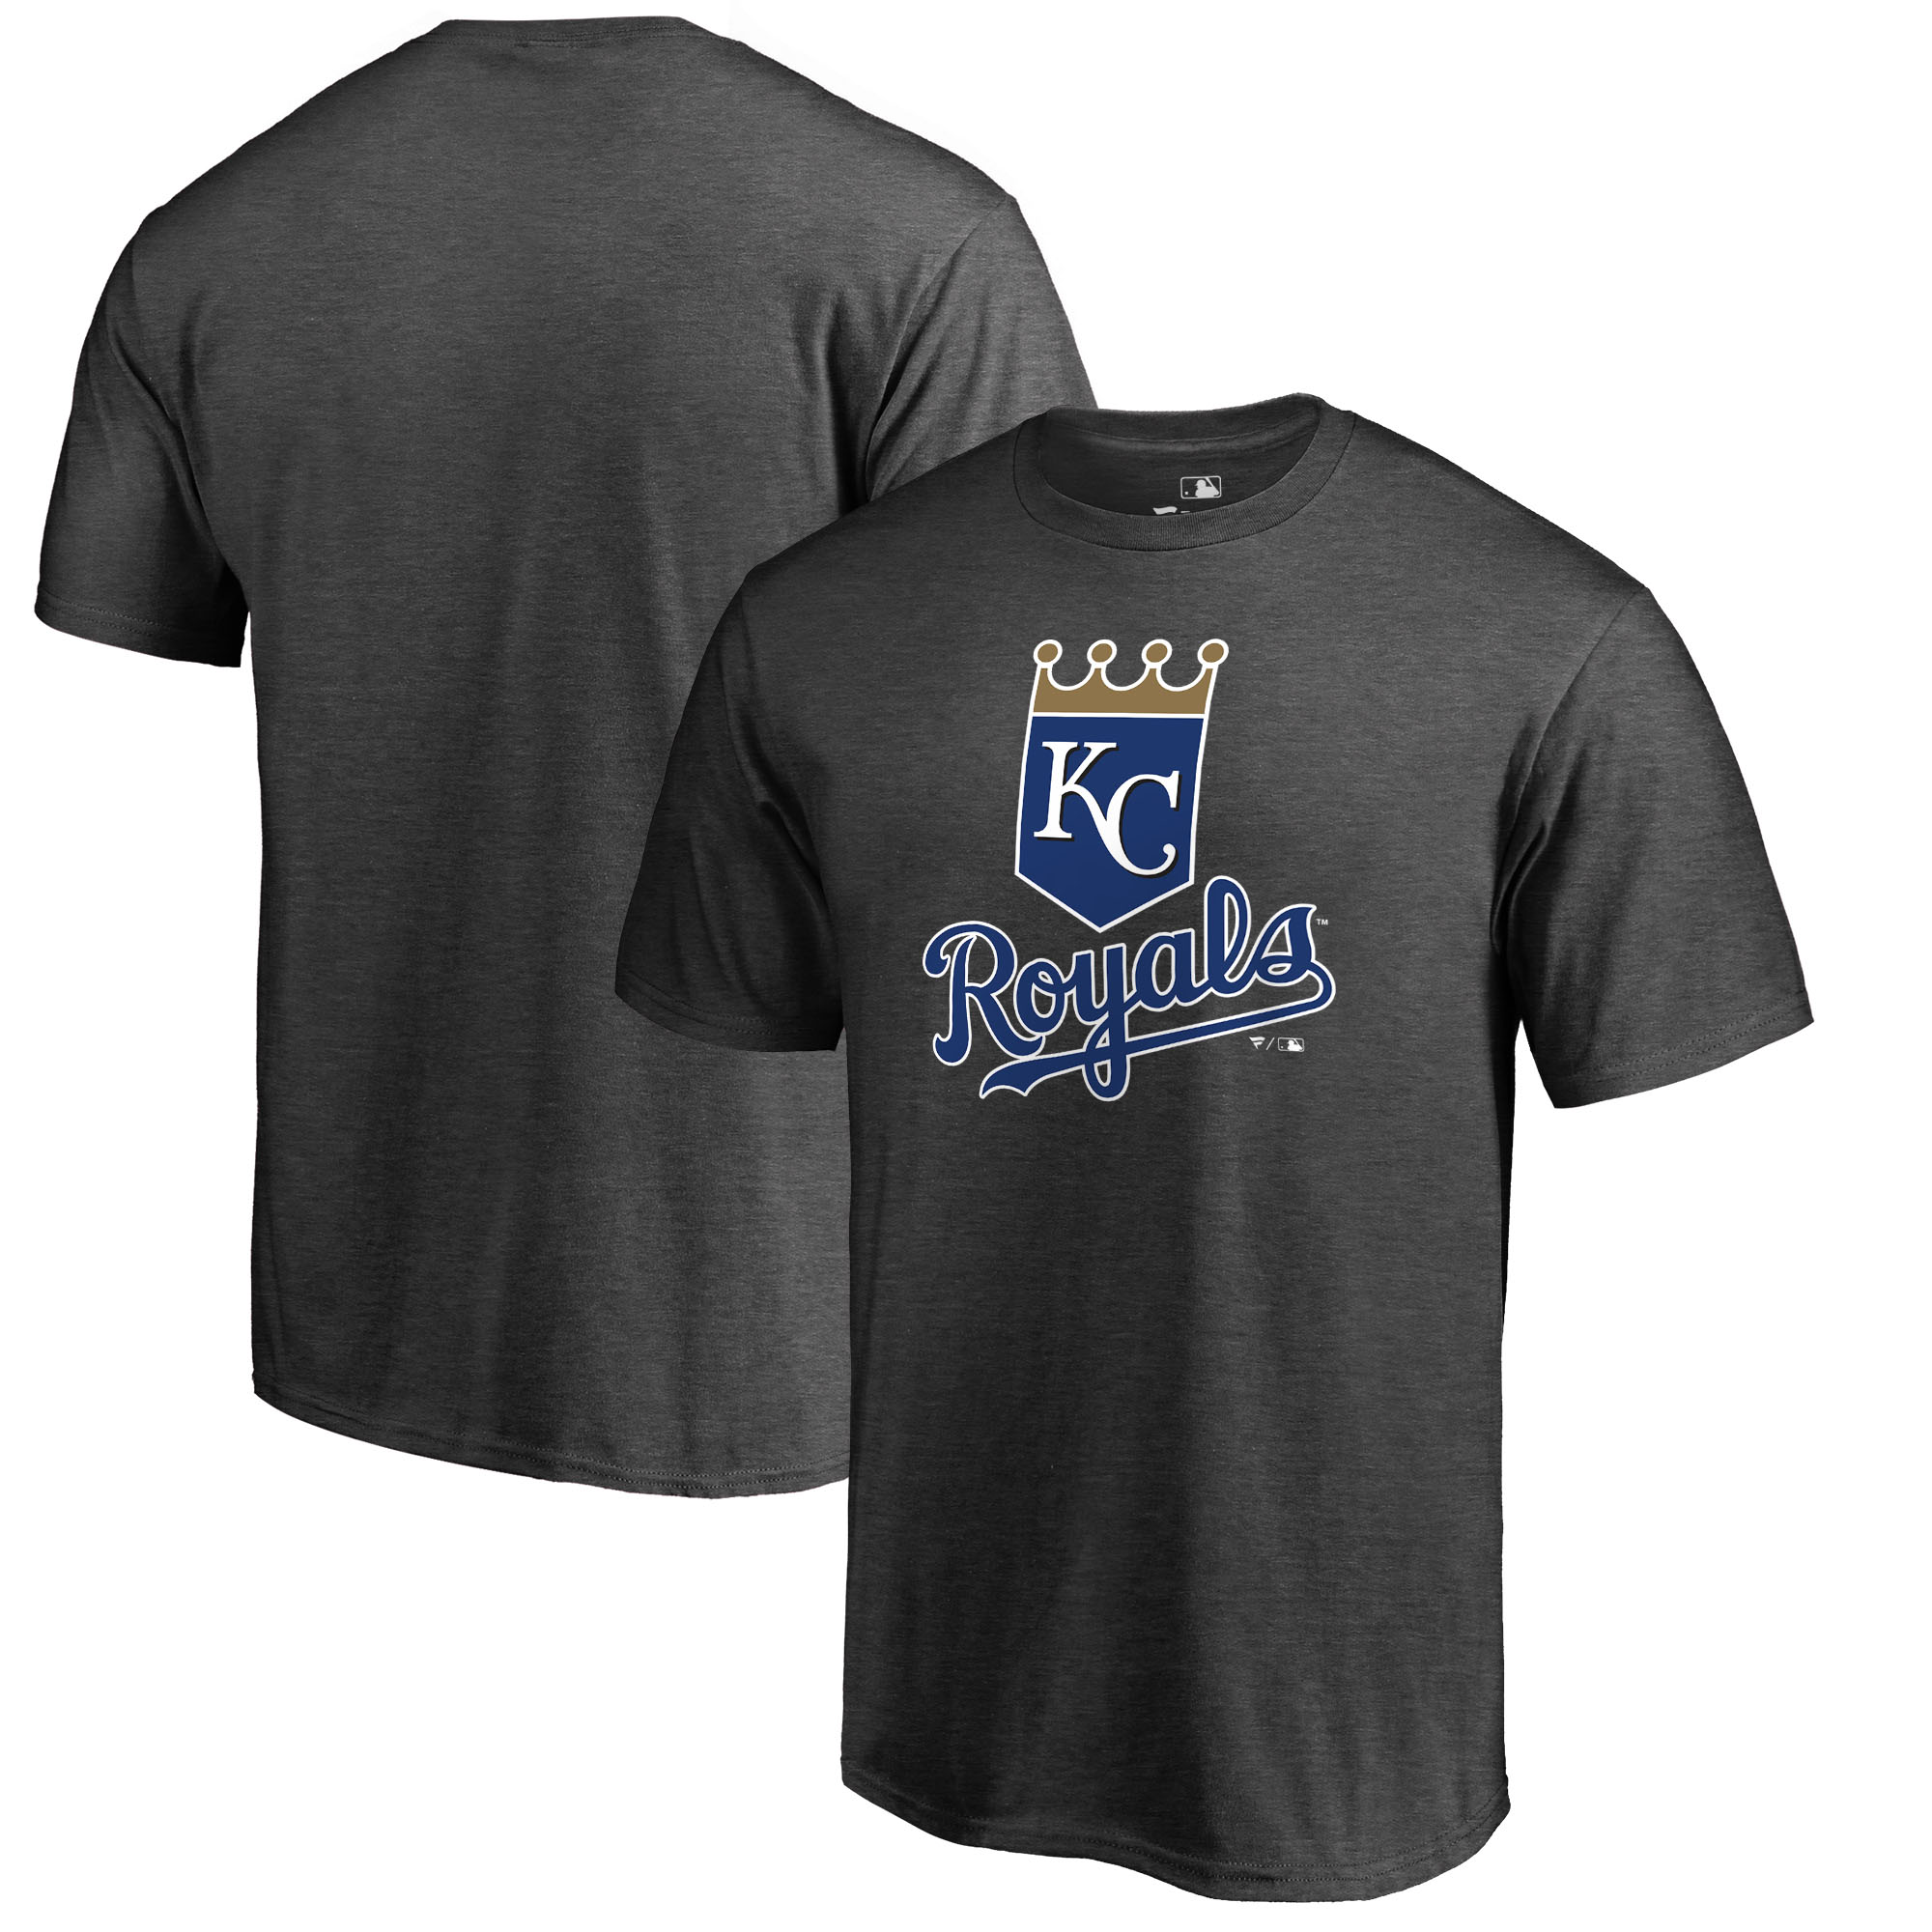 Kansas City Royals Fanatics Branded Primary Logo T-Shirt - Heathered Charcoal